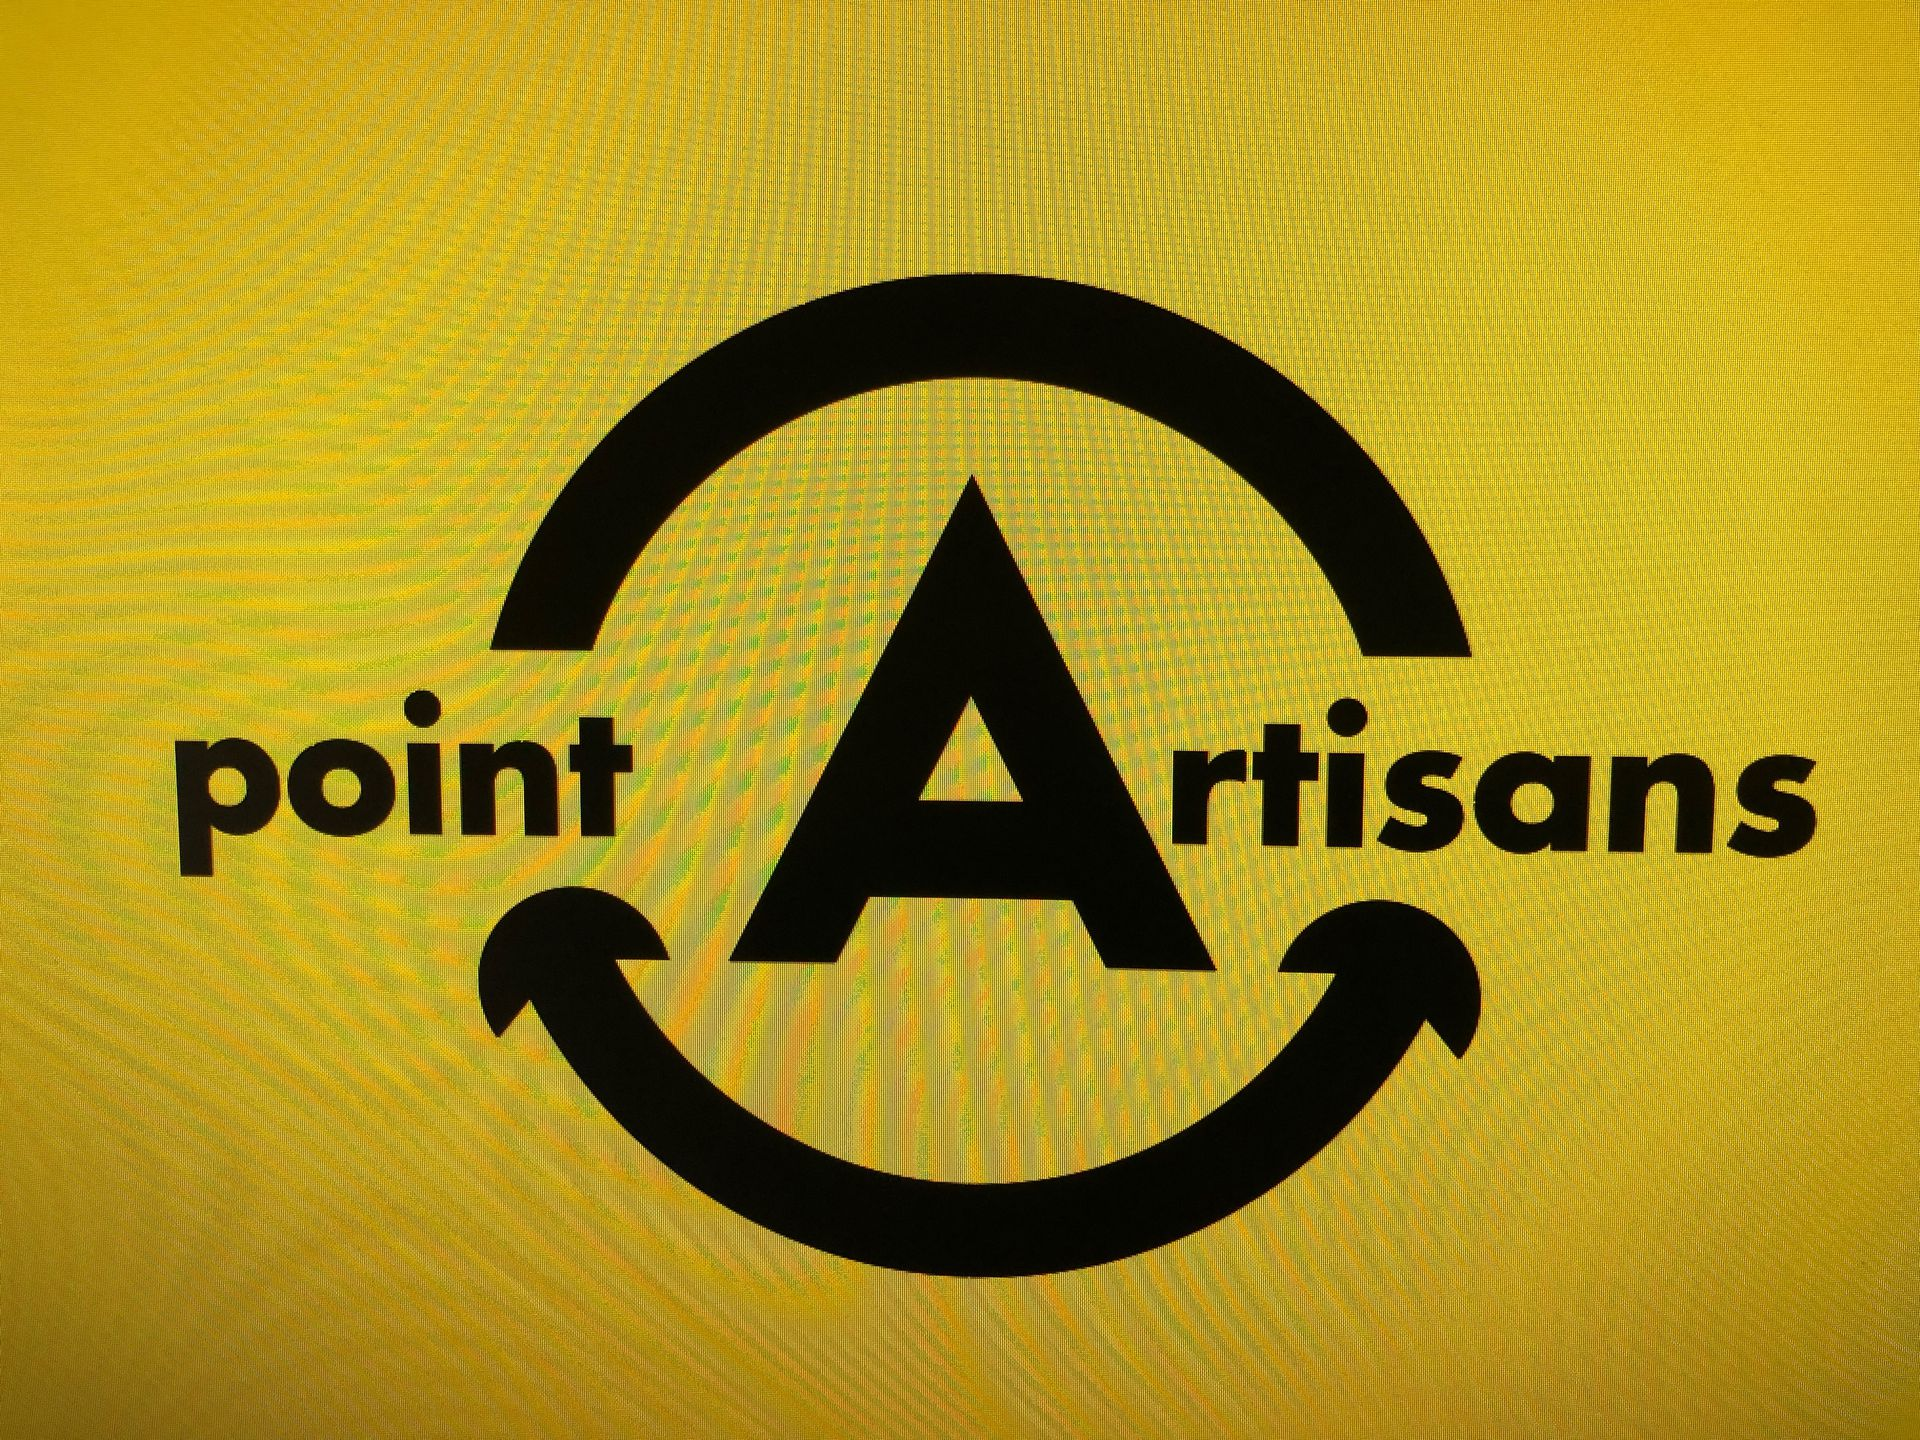 ABACAD Point Artisans carrelage et dallage (vente, pose, traitement)